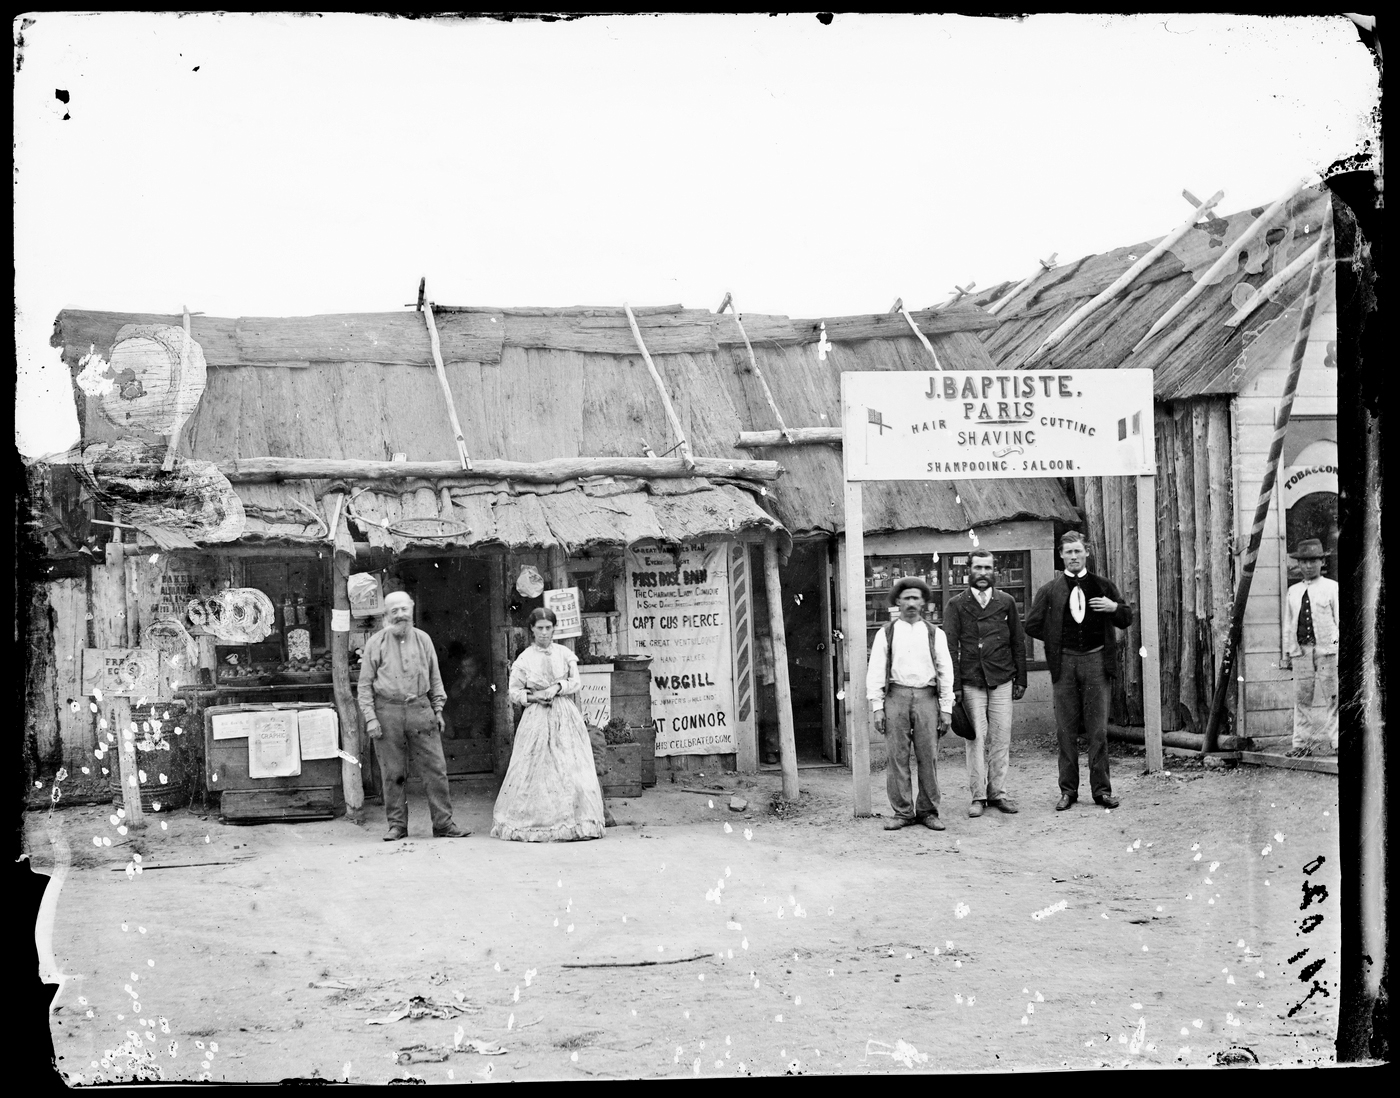 J. Baptiste, hairdressing/barber's saloon, Hill End gold fields, ca. 1872